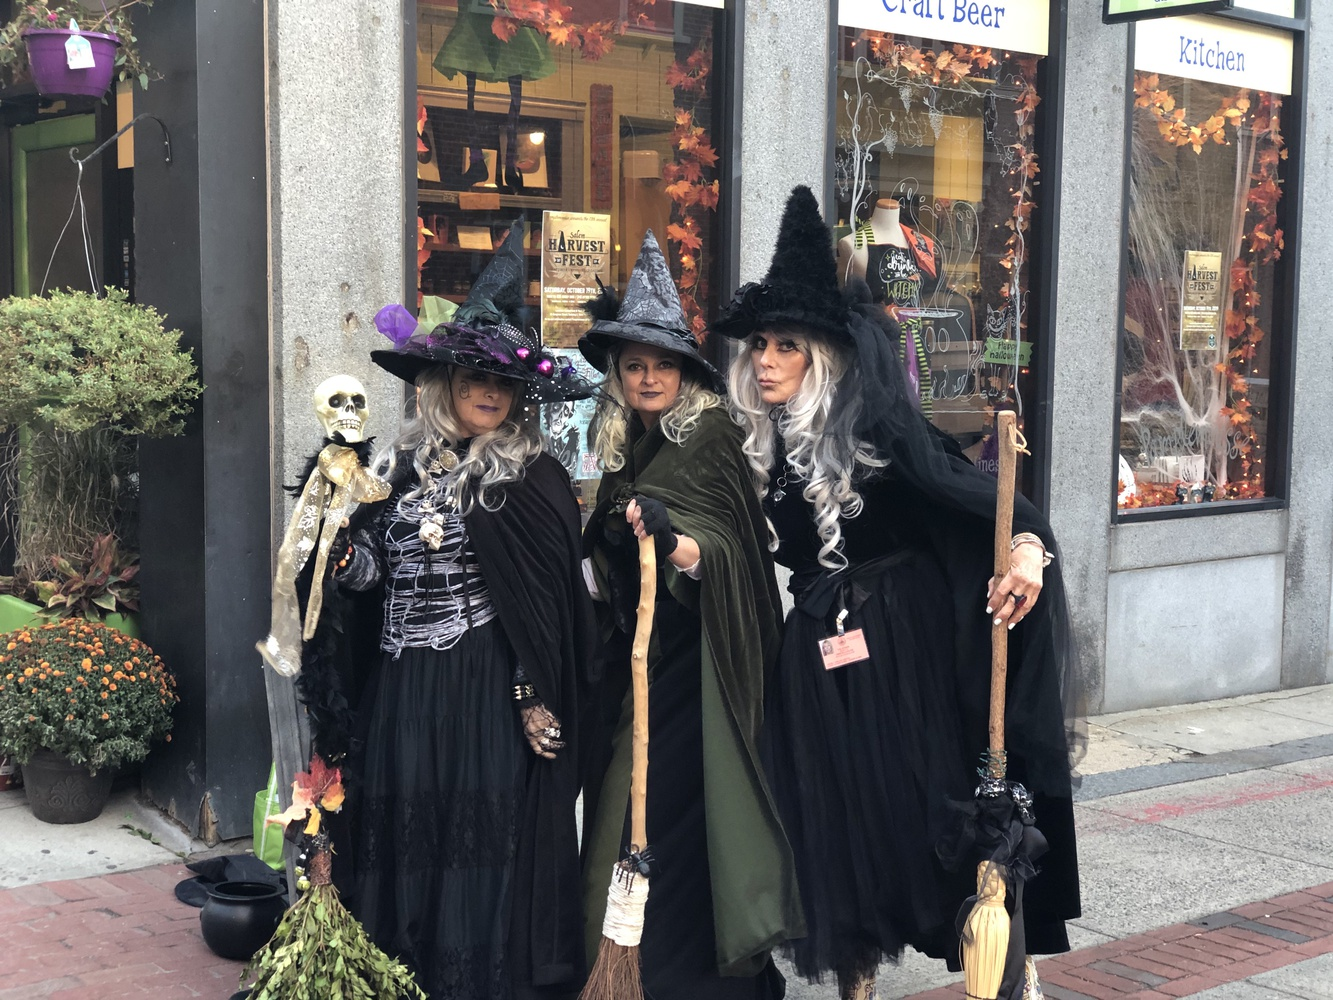 The Salem Psychic Fair and Witches' Market featured tarot card readings, palm readings, and crystal ball scrying.